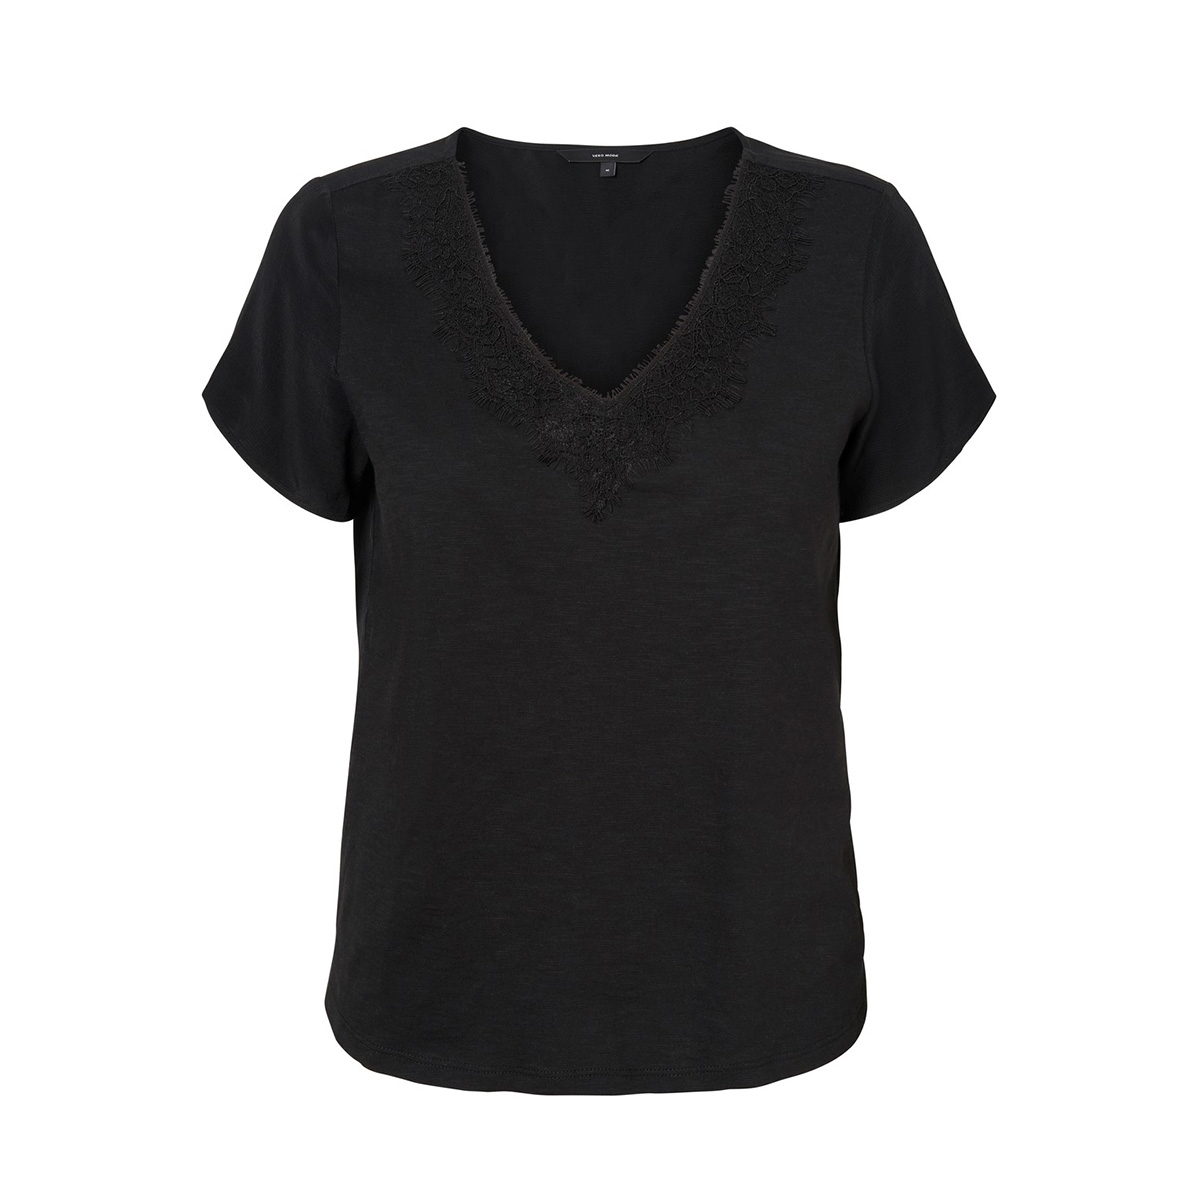 vmvelma s/s woven mix top sb5 10221449 vero moda t-shirt black